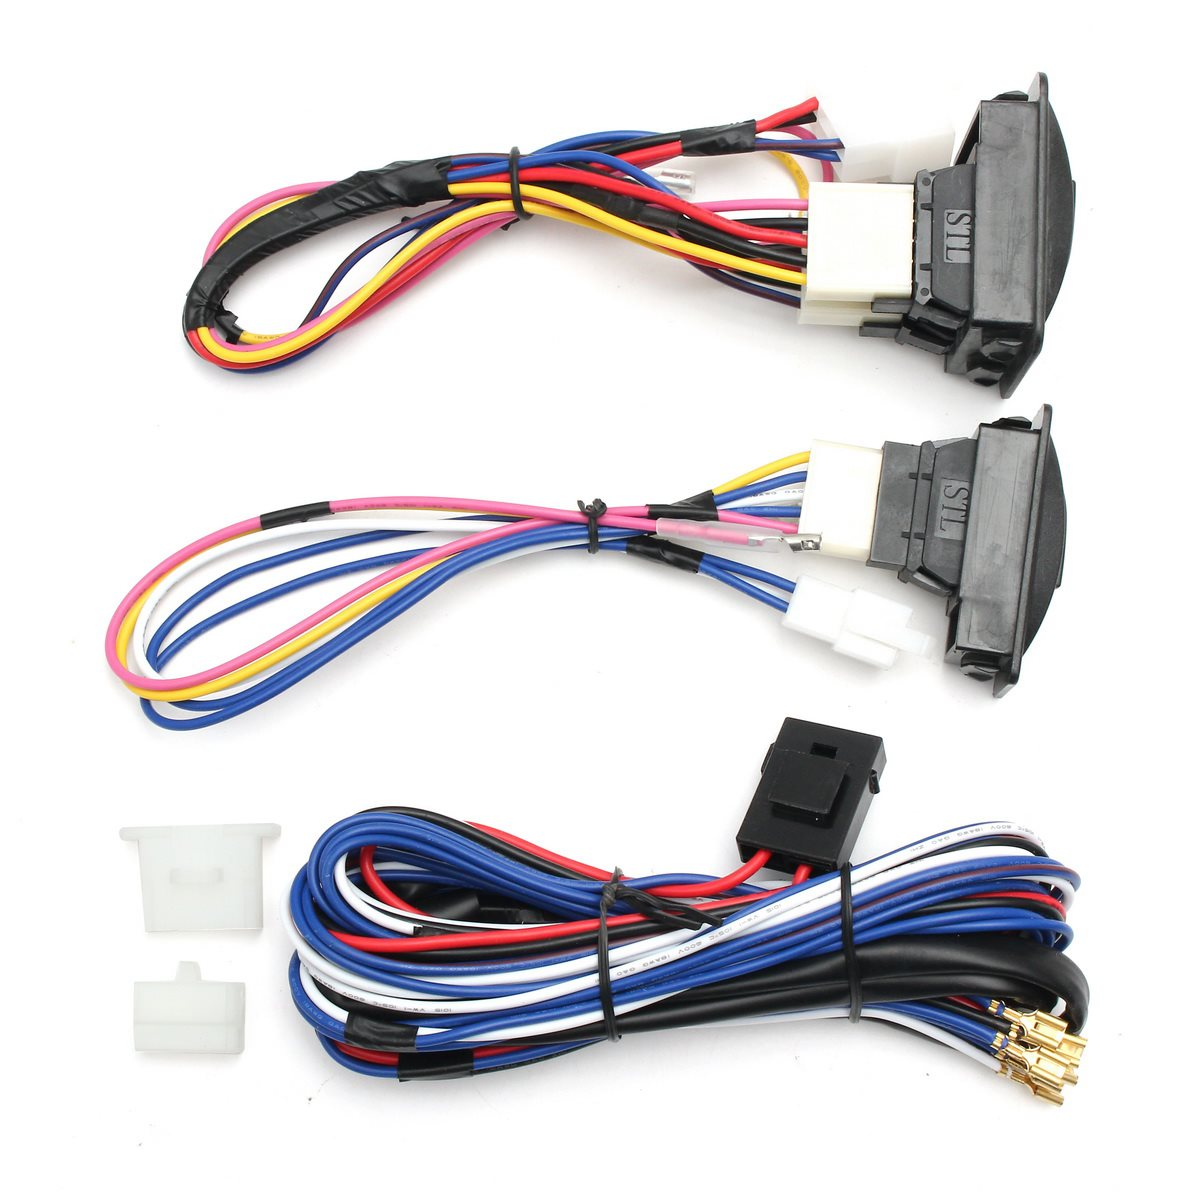 Universal Wiring Harness Installation Trusted Schematics Diagram For Car 6pcs 12v Power Window Switch Kits With Instructions